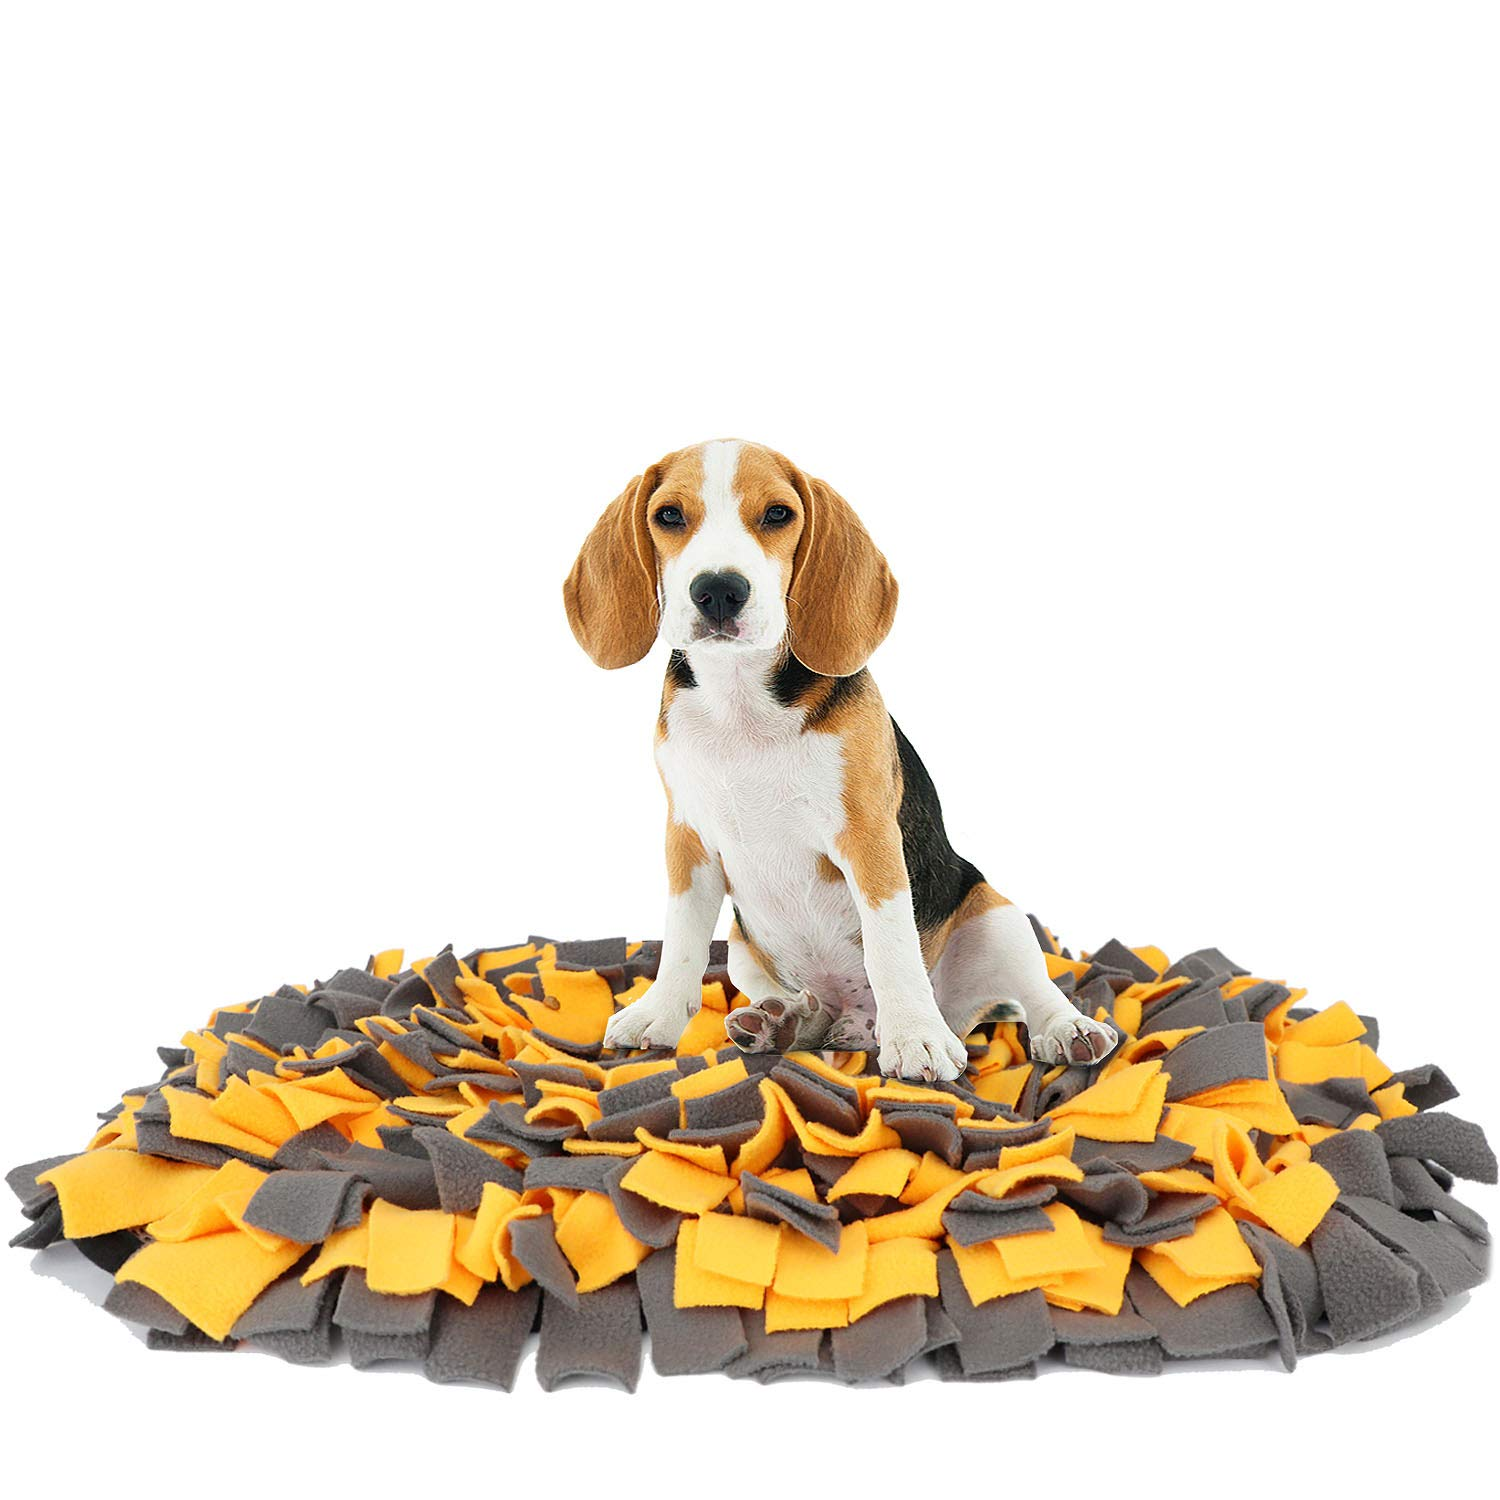 YINXUE Pet Snuffle Mat Durable Washable Dog Slow Feeding Mat (22'' x 16'') Anti Slip Puzzle Blanket for Distracting Smell Training Foraging, Yellow-Grey by YINXUE